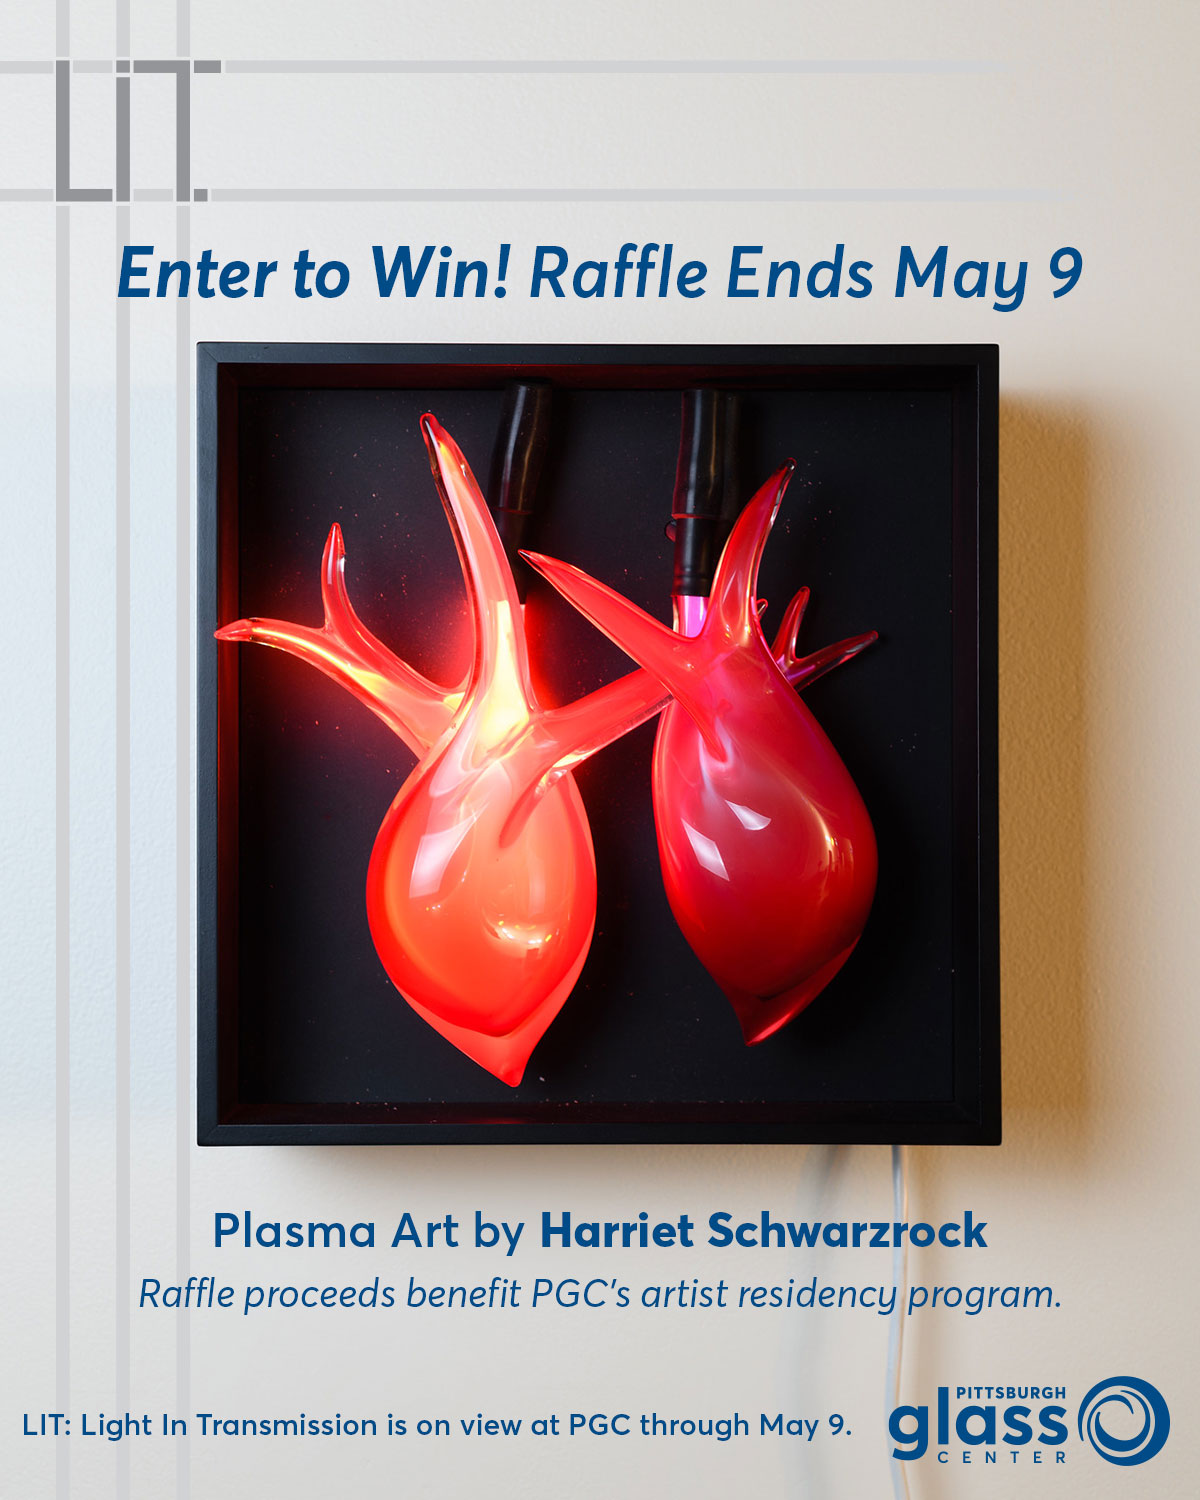 Enter to win plasma art, raffle ends May 9